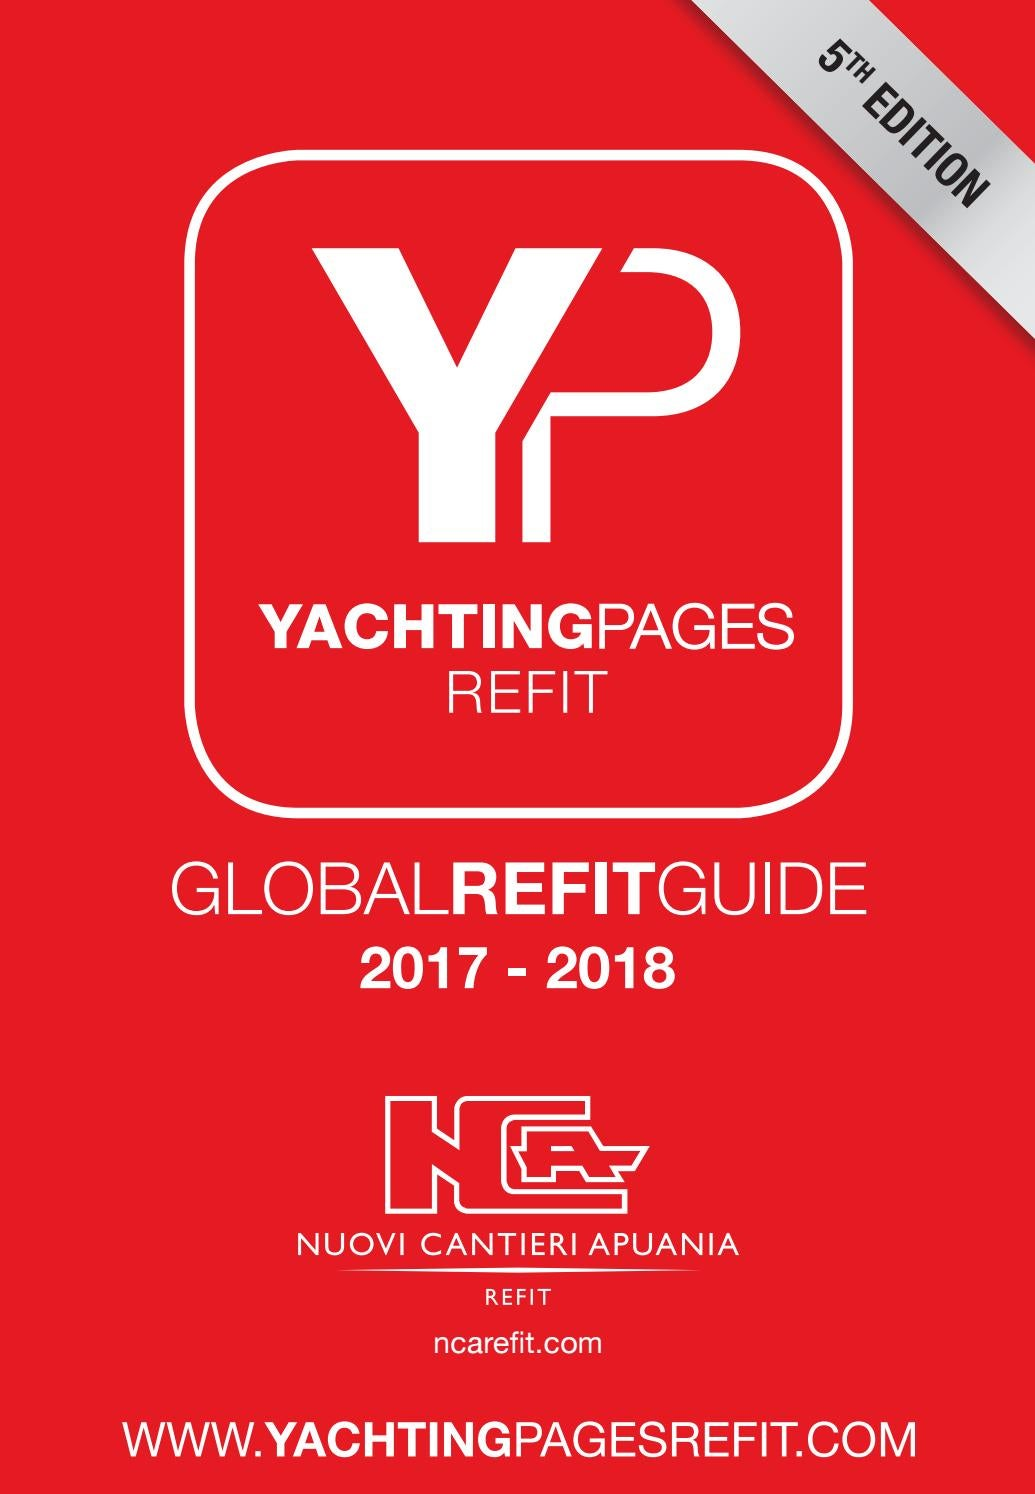 Yachting Pages Refit Guide 2017-2018 by yachtingpages - issuu